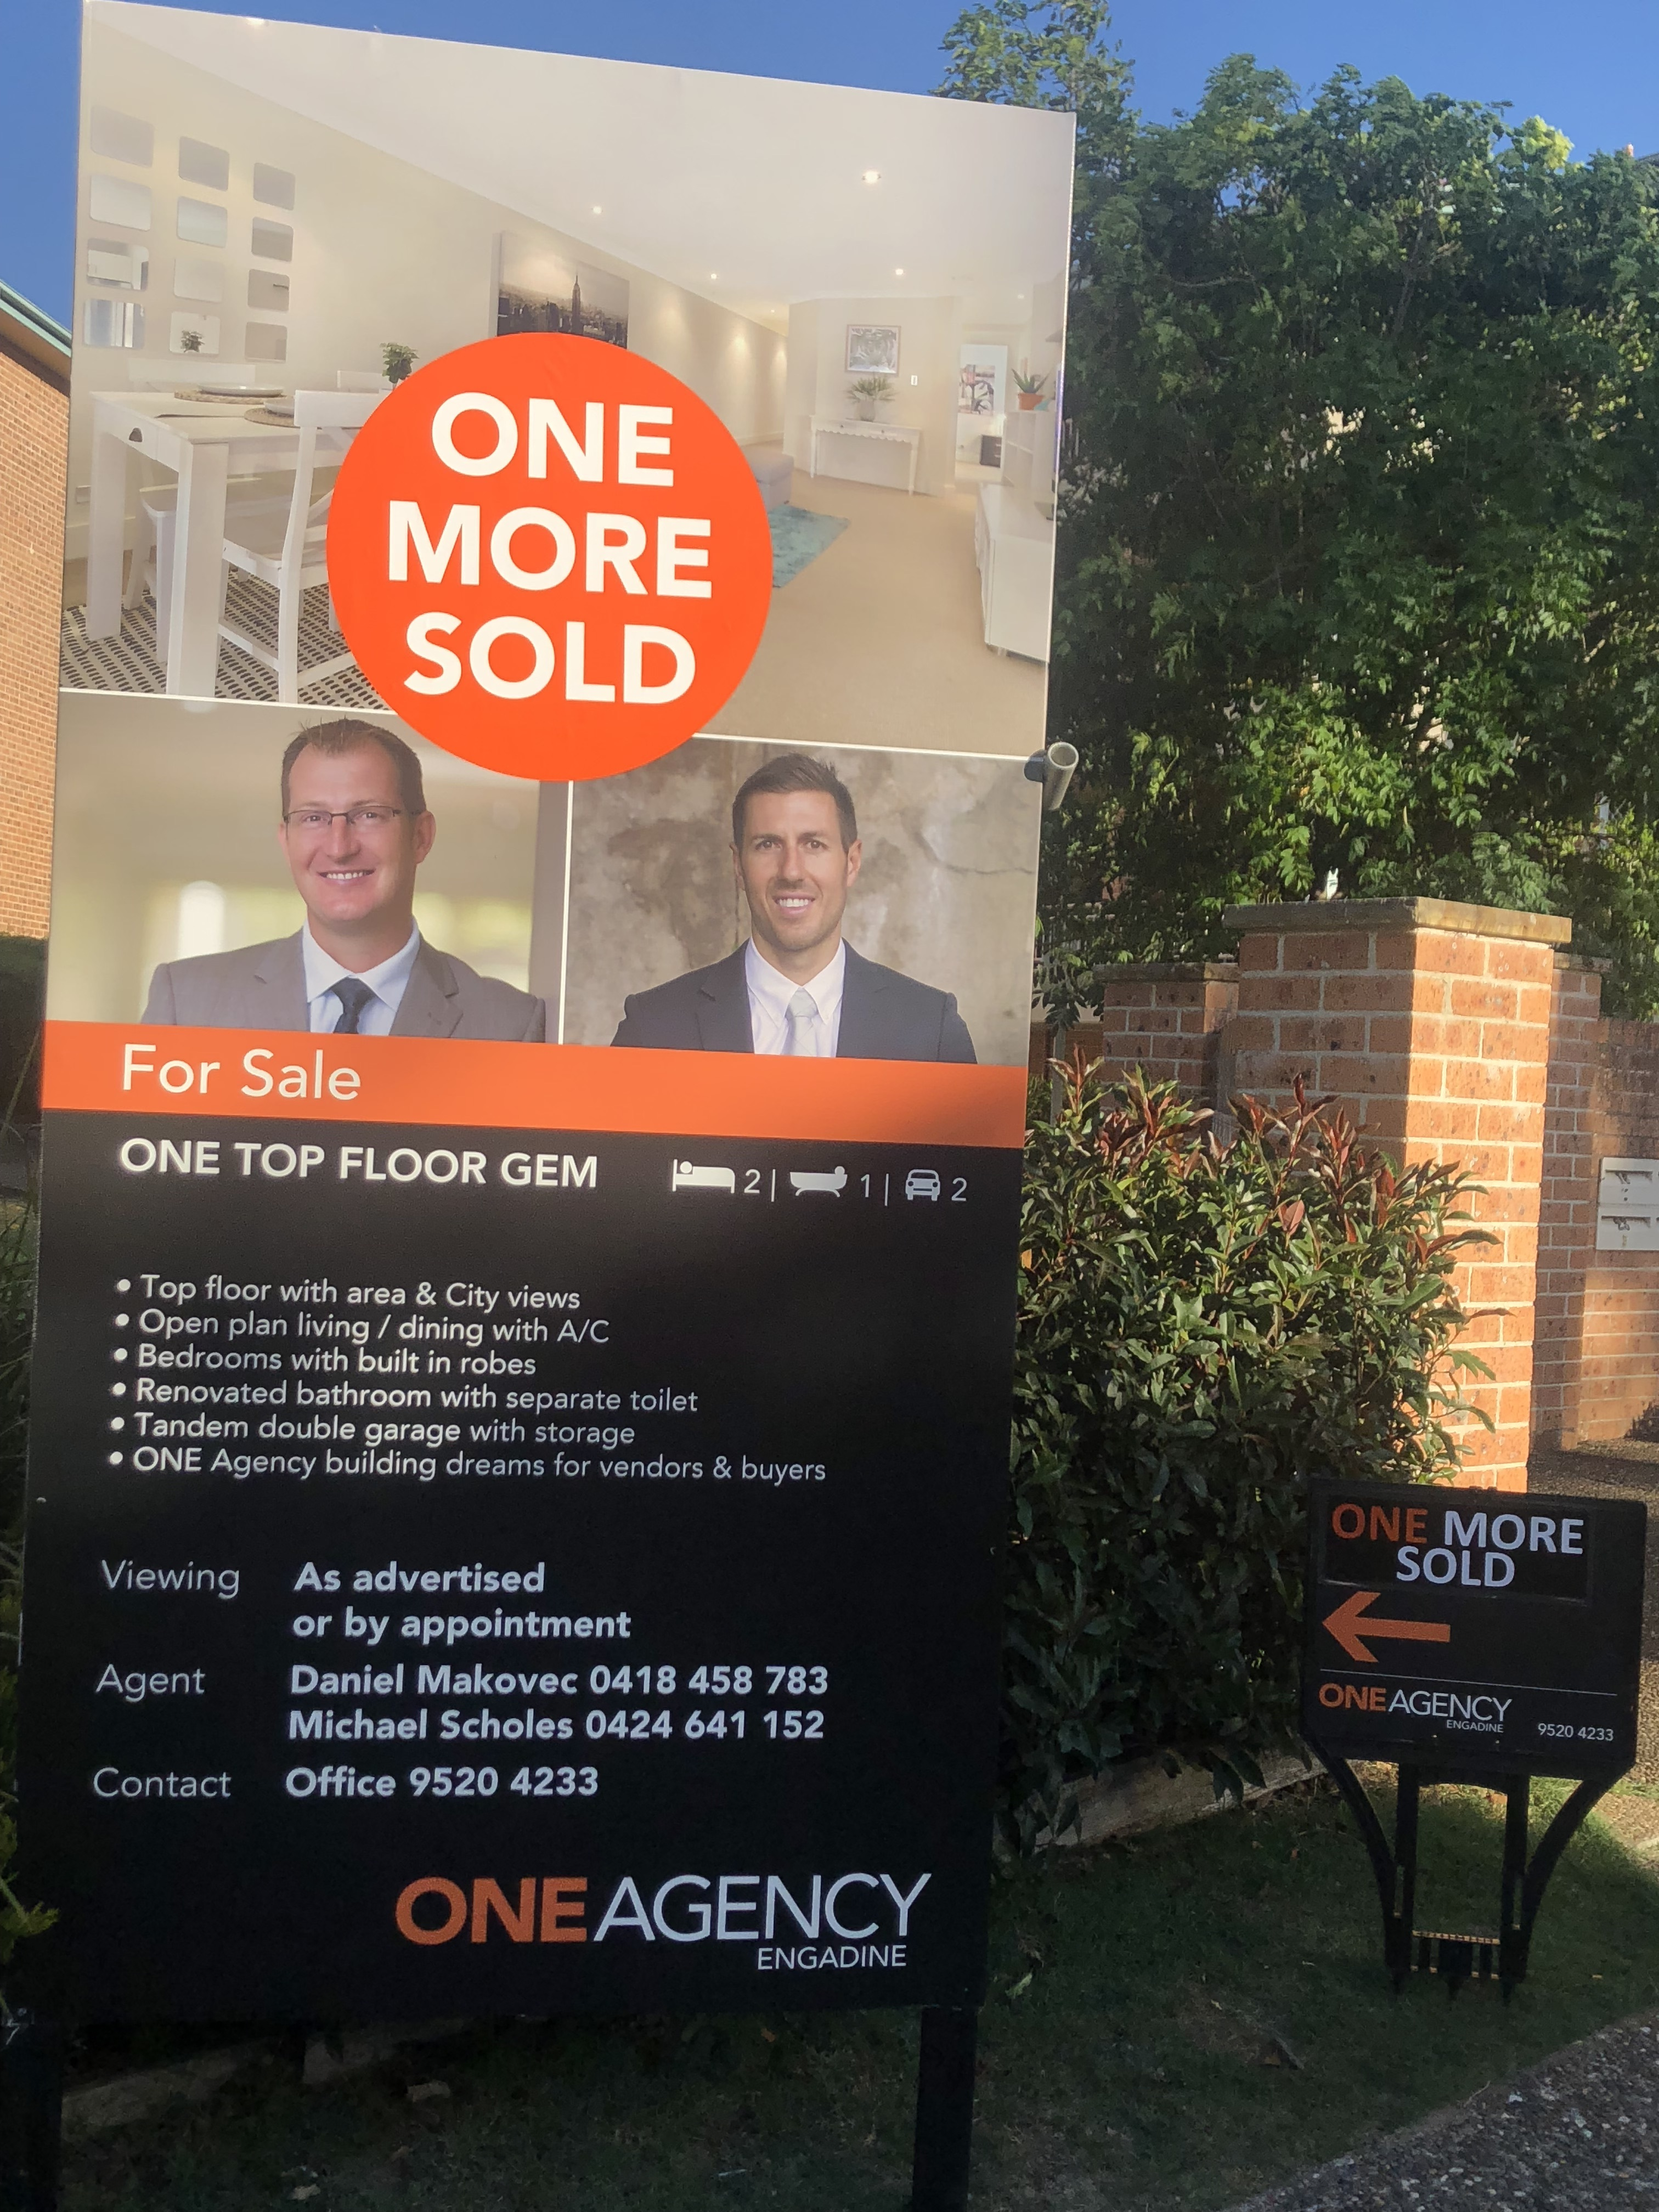 SOLD MY PROPERTY IN 1 DAY!